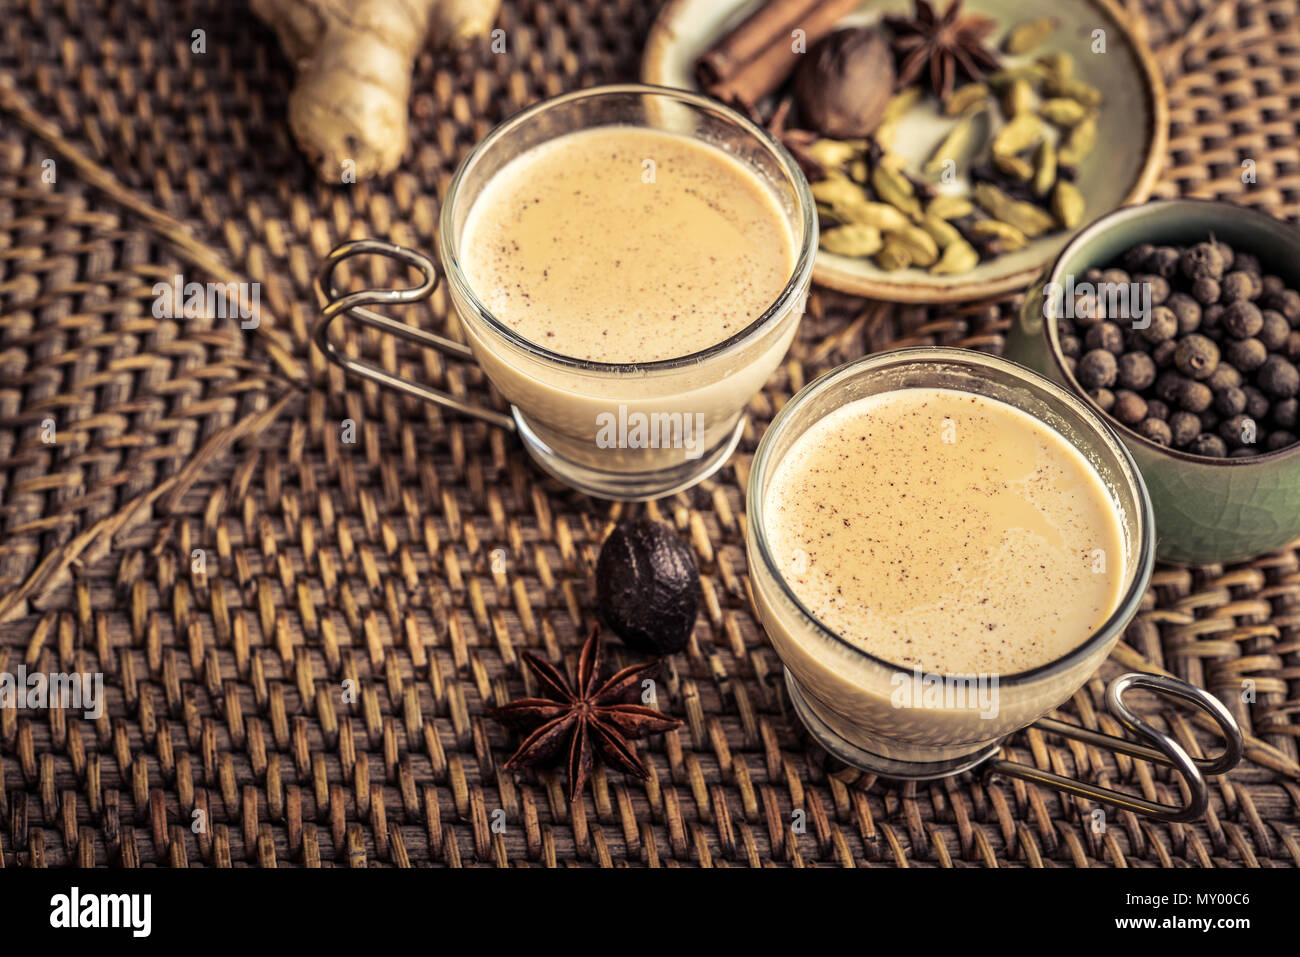 Traditional indian grink - masala chai tea (milk tea) with spices on wooden background Stock Photo